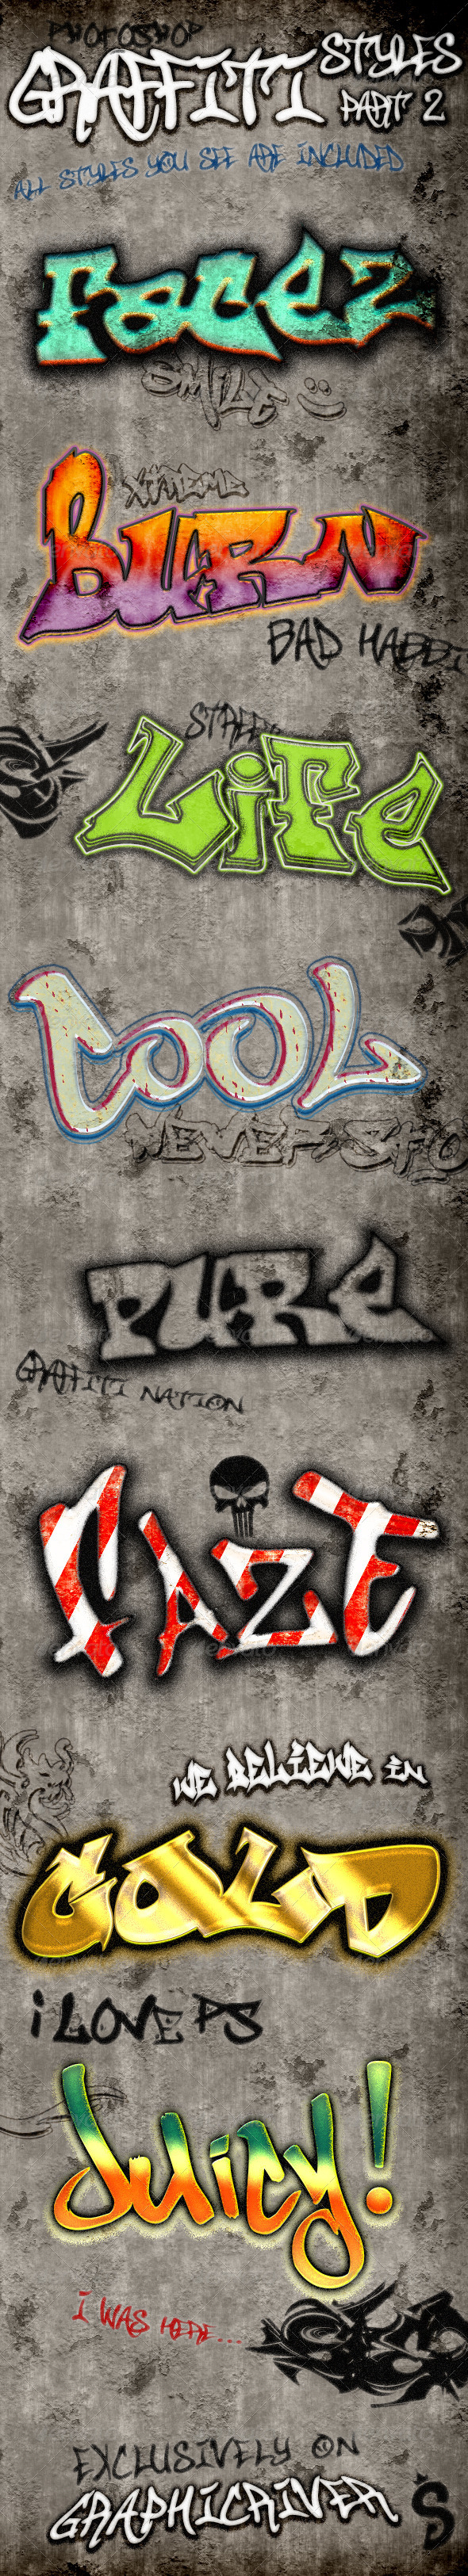 Graffiti Styles - Part 2 - Styles Photoshop